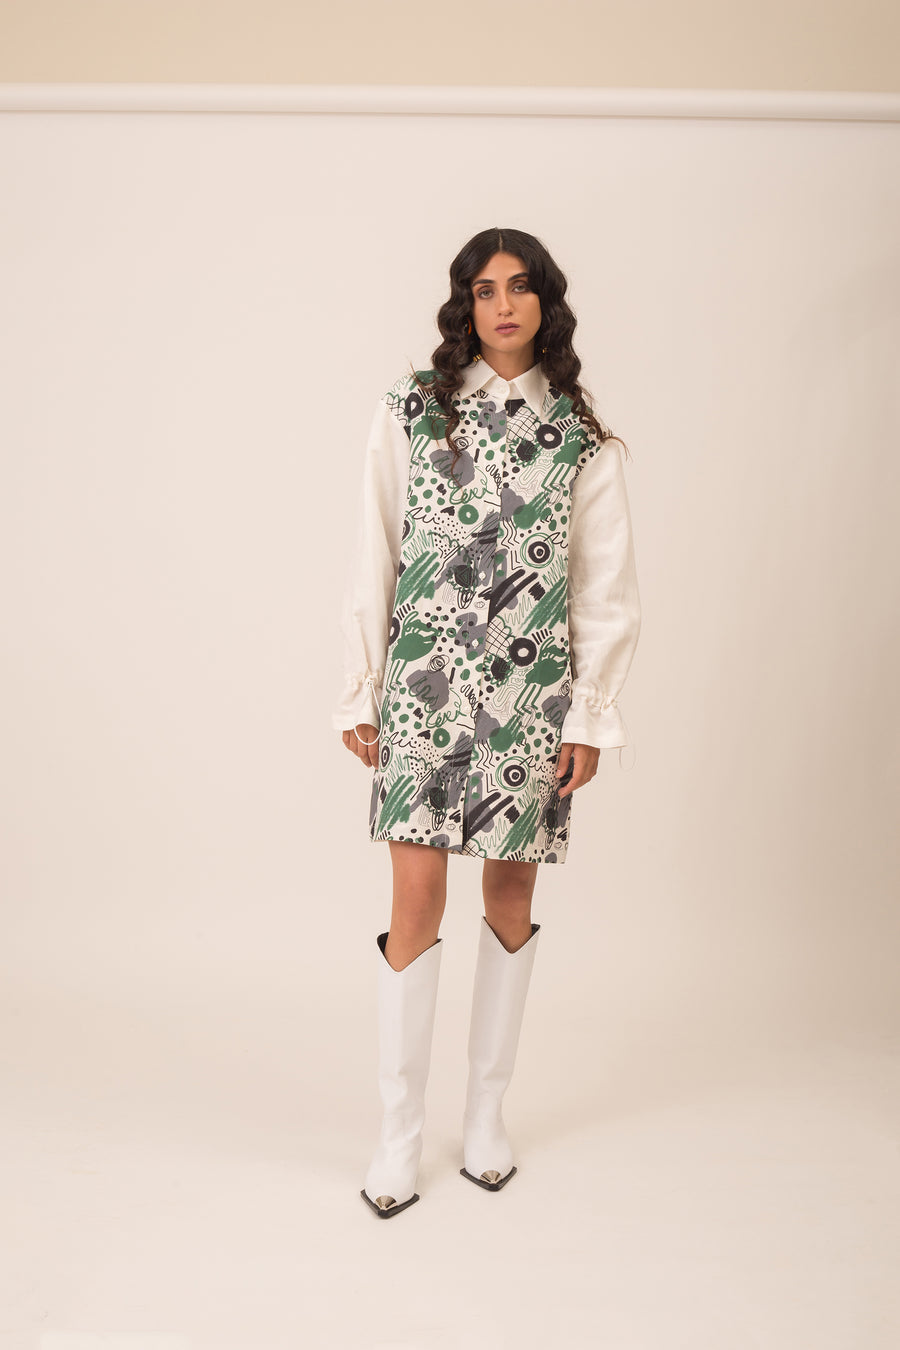 Katharine Green Buttoned Dress - OFIR IVGI